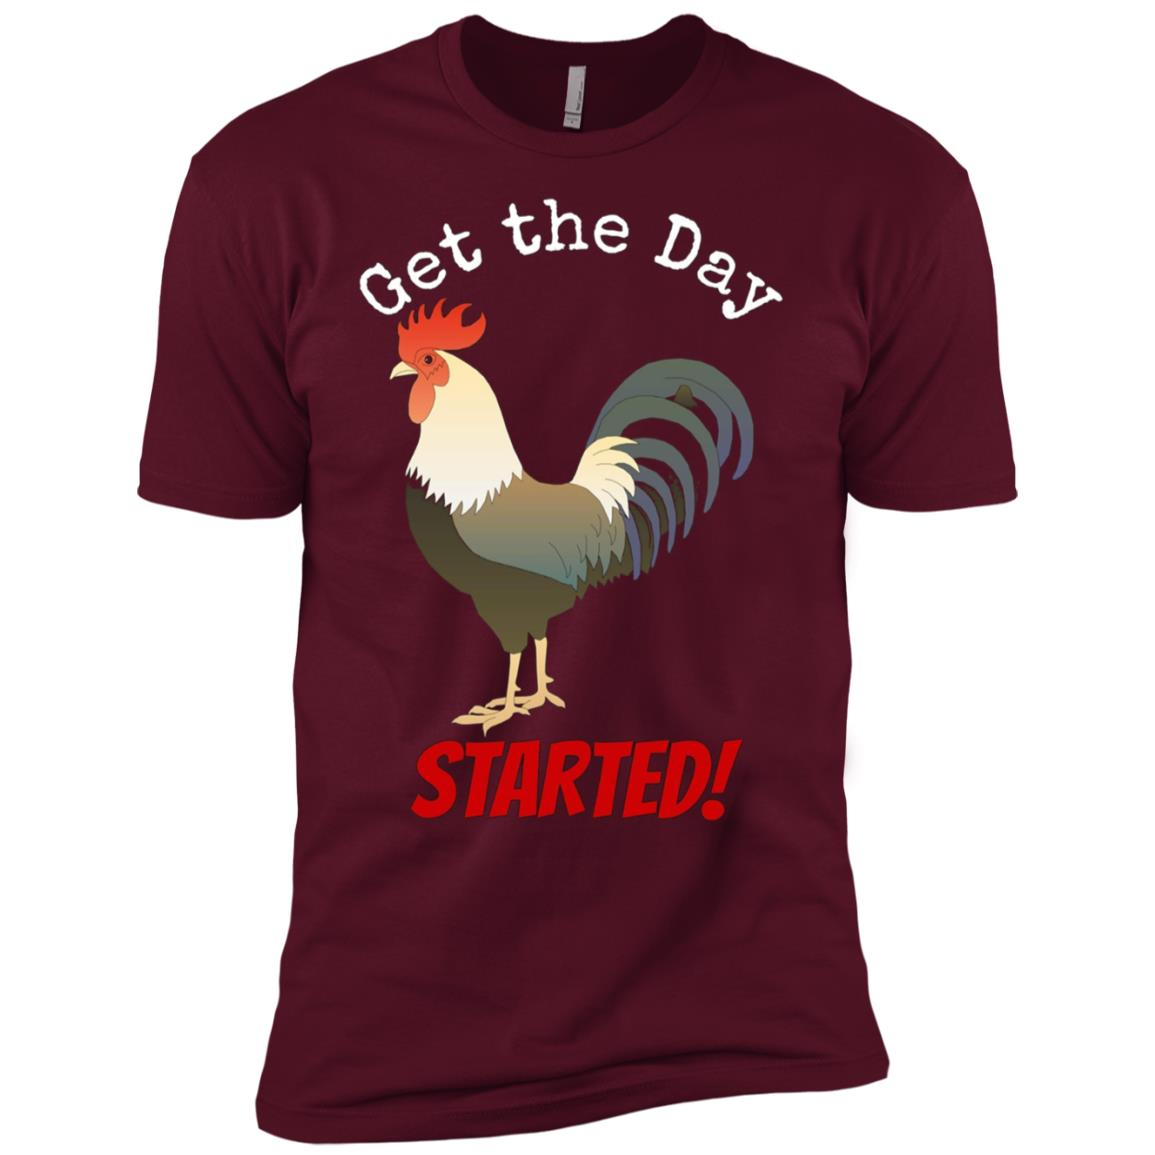 Get the Day Started Rooster Pajama Men Short Sleeve T-Shirt